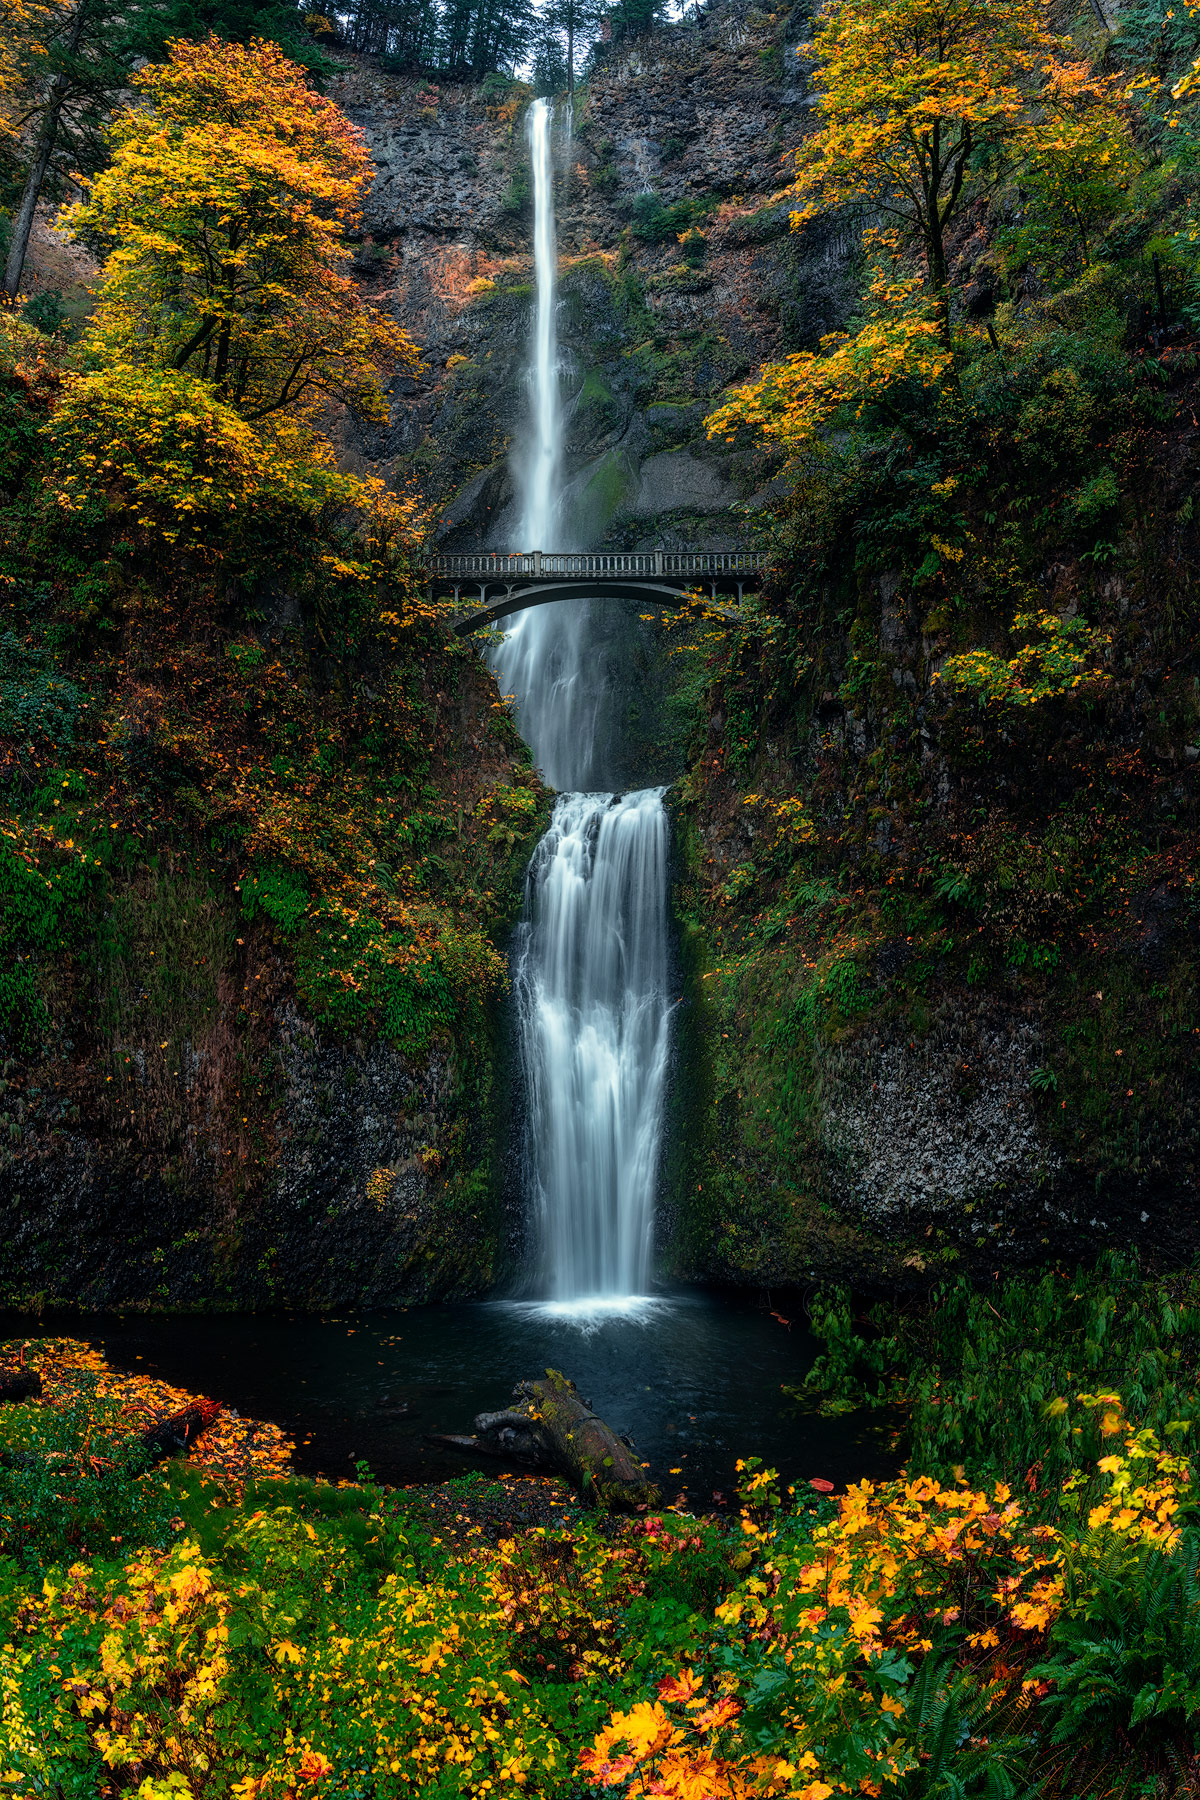 NATURE FINE ART LIMITED EDITION OF 100 Multnomah Fallsis awaterfalllocated in theColumbia River Gorge...